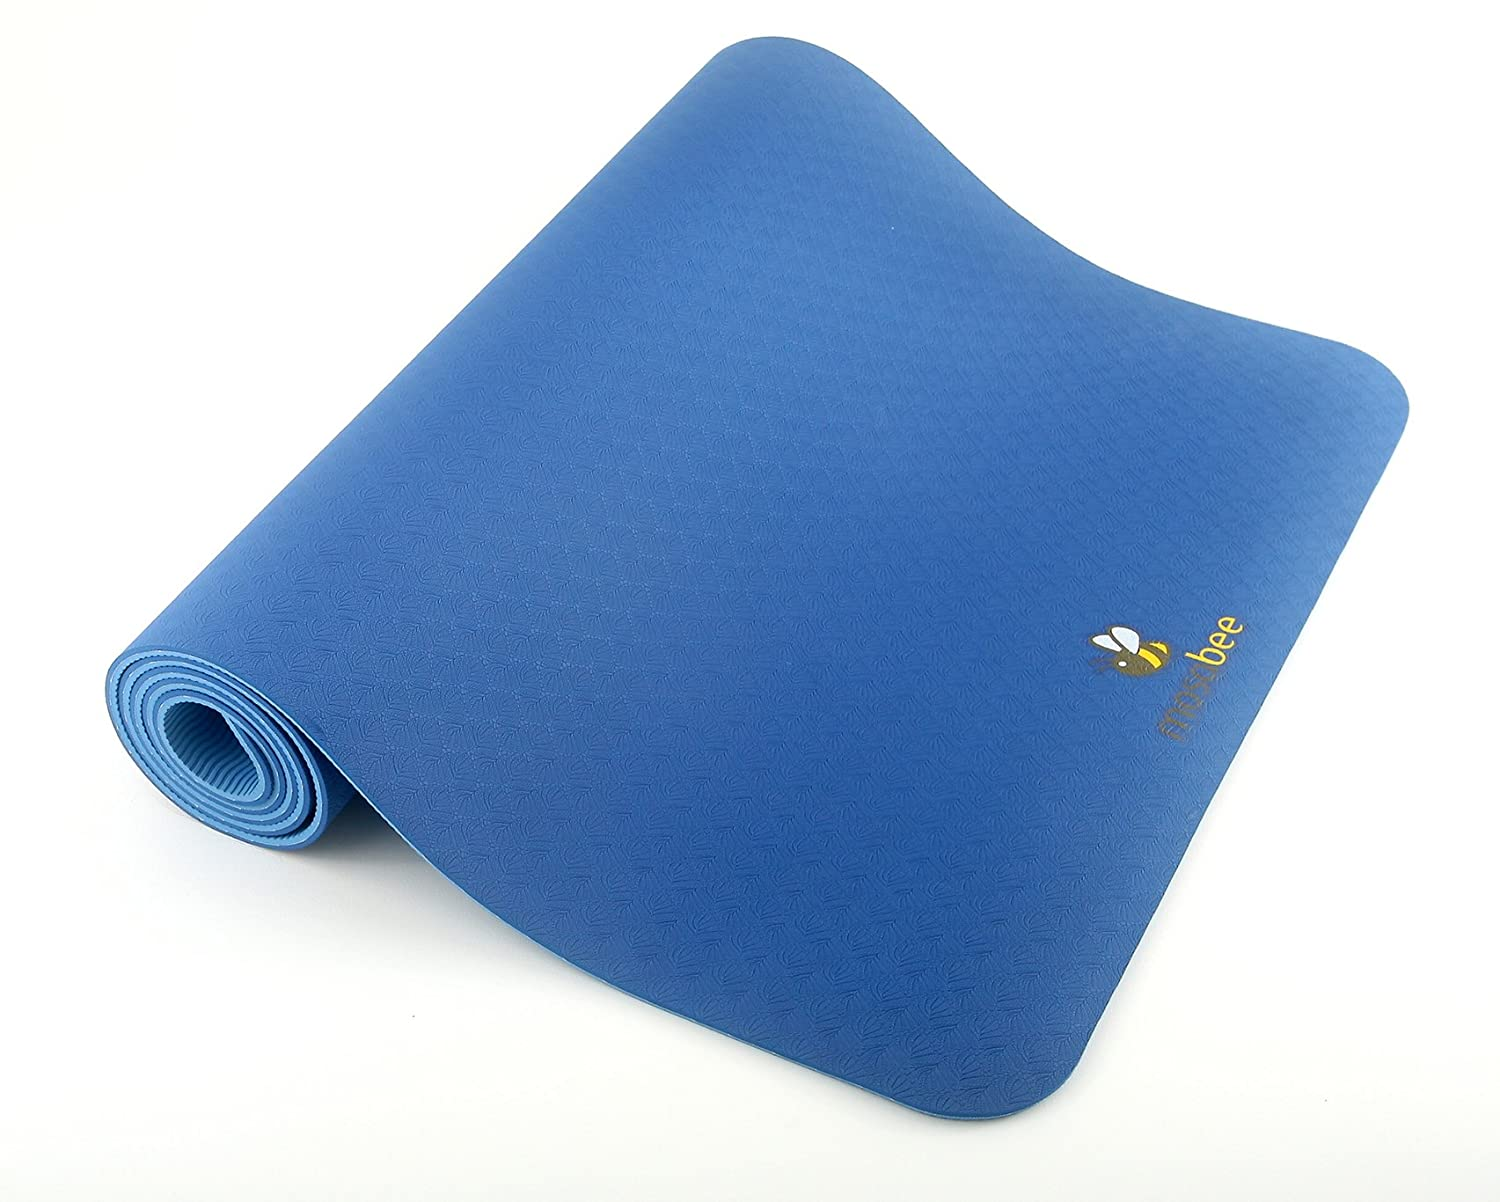 Amazon.com: mosabee bsimple Esterilla de yoga, 6MM: Sports ...